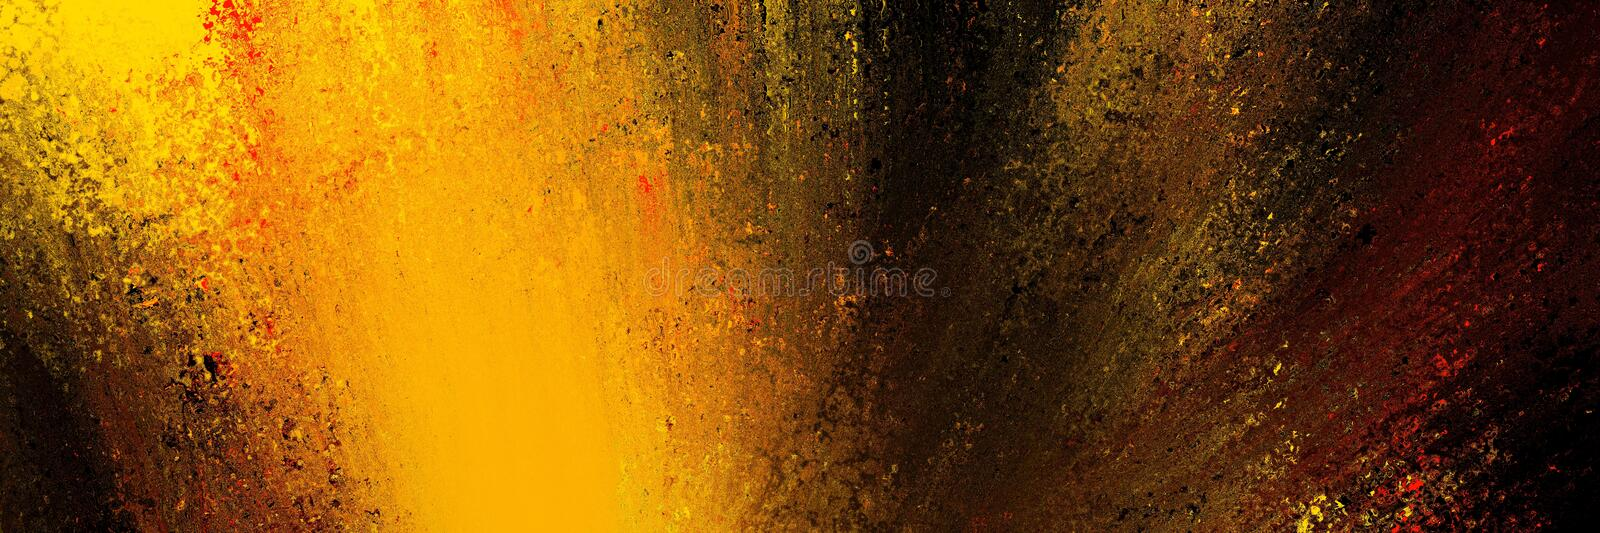 Abstract background in black with bright orange yellow and red paint in color splash design, colorful explosion or dramatic brush vector illustration